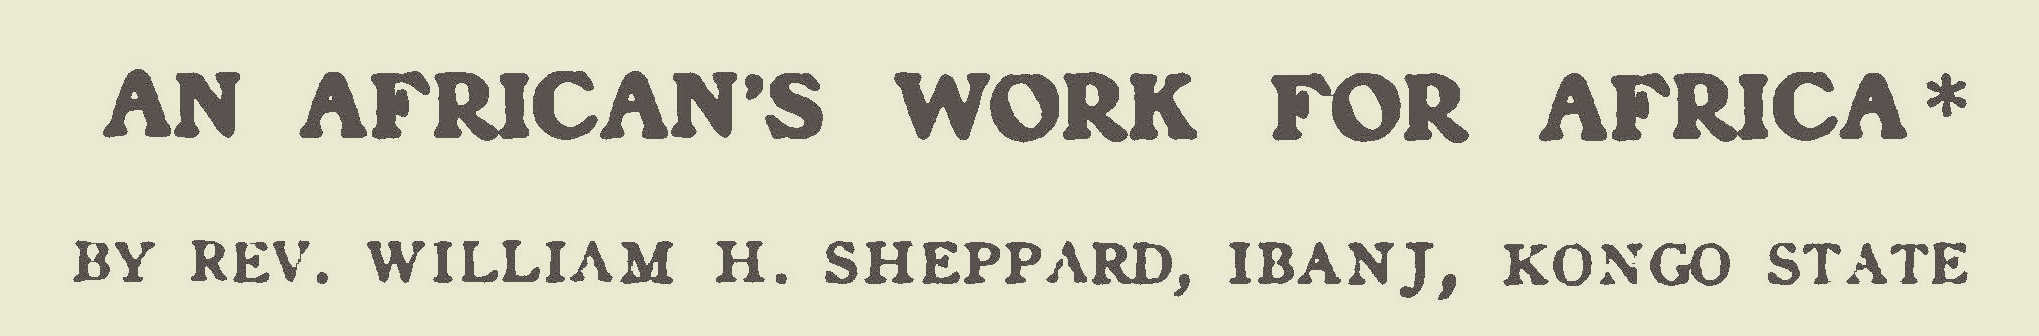 Sheppard, William Henry, An African's Work For Africa Title Page.jpg